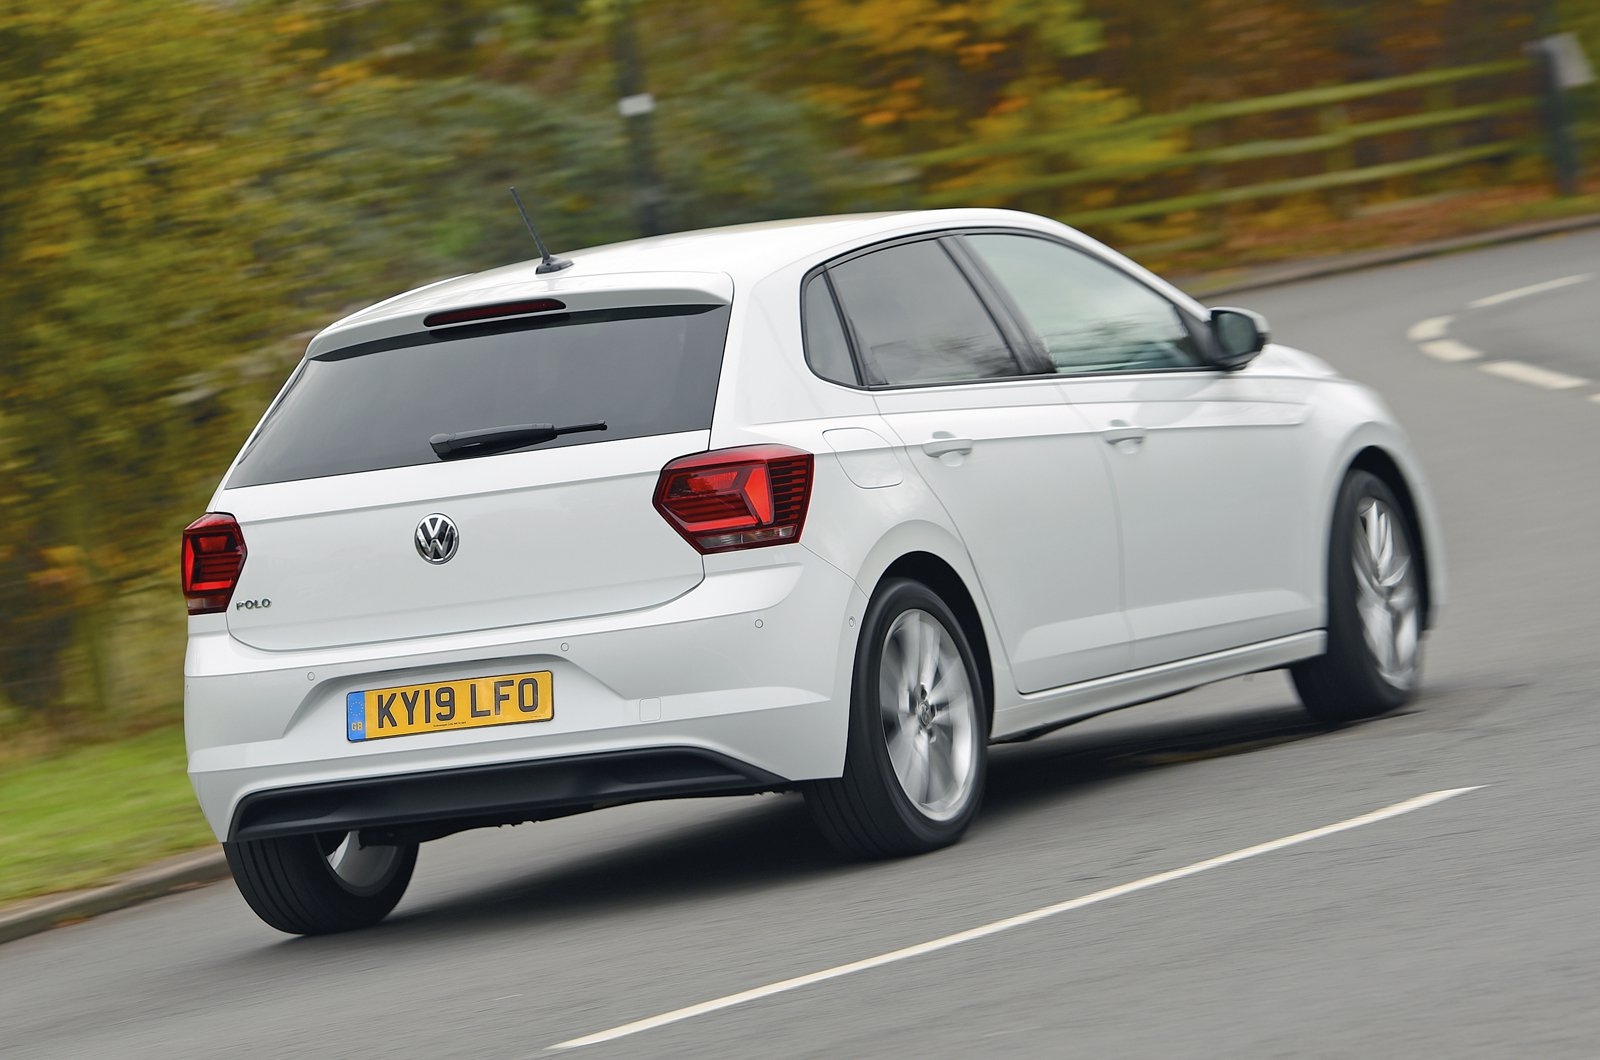 Volkswagen Polo rear - 19 plate